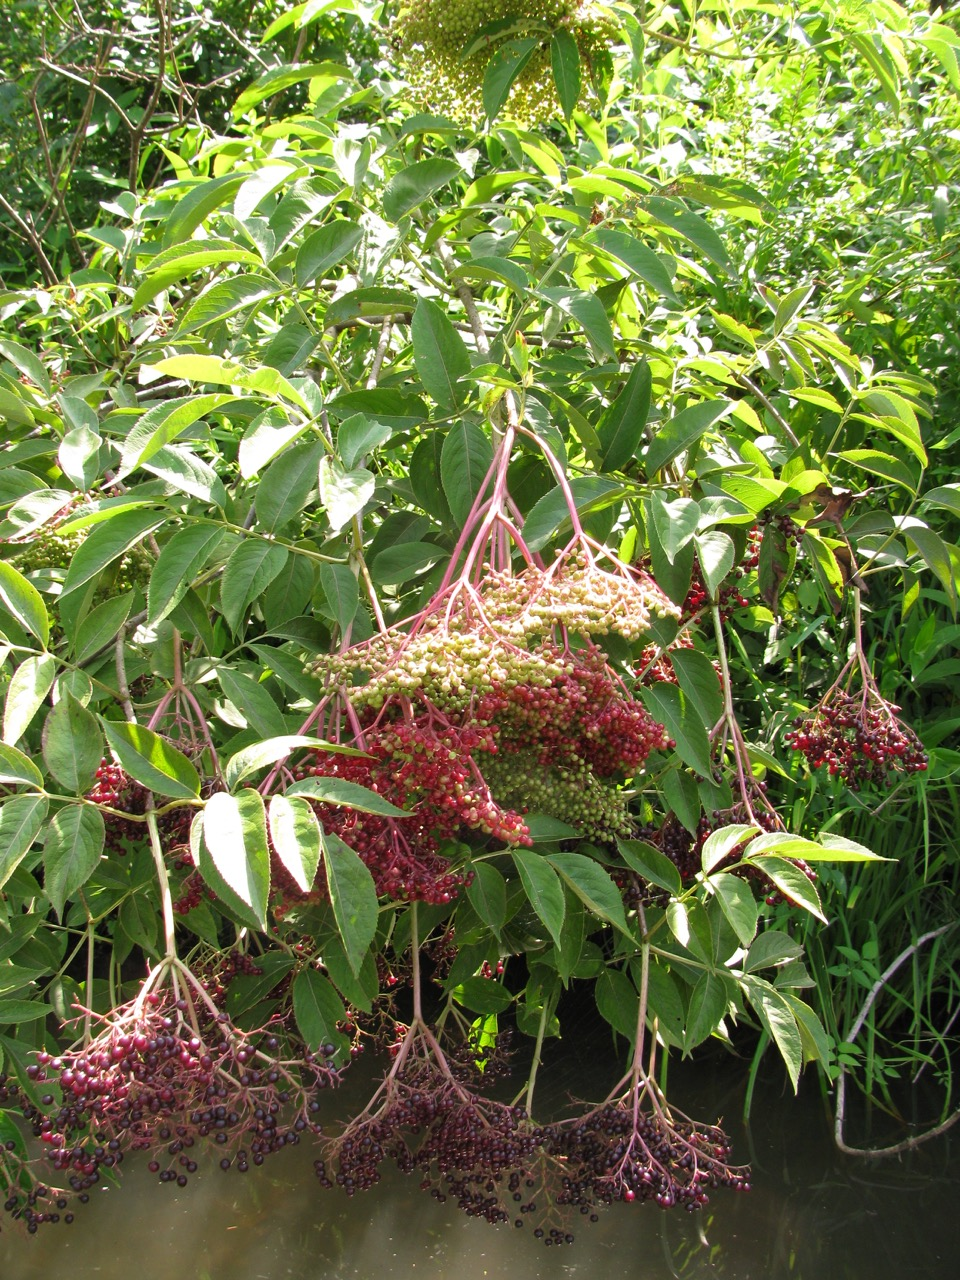 The Scientific Name is Sambucus canadensis. You will likely hear them called Common Elderberry. This picture shows the Developing fruit clusters of Sambucus canadensis